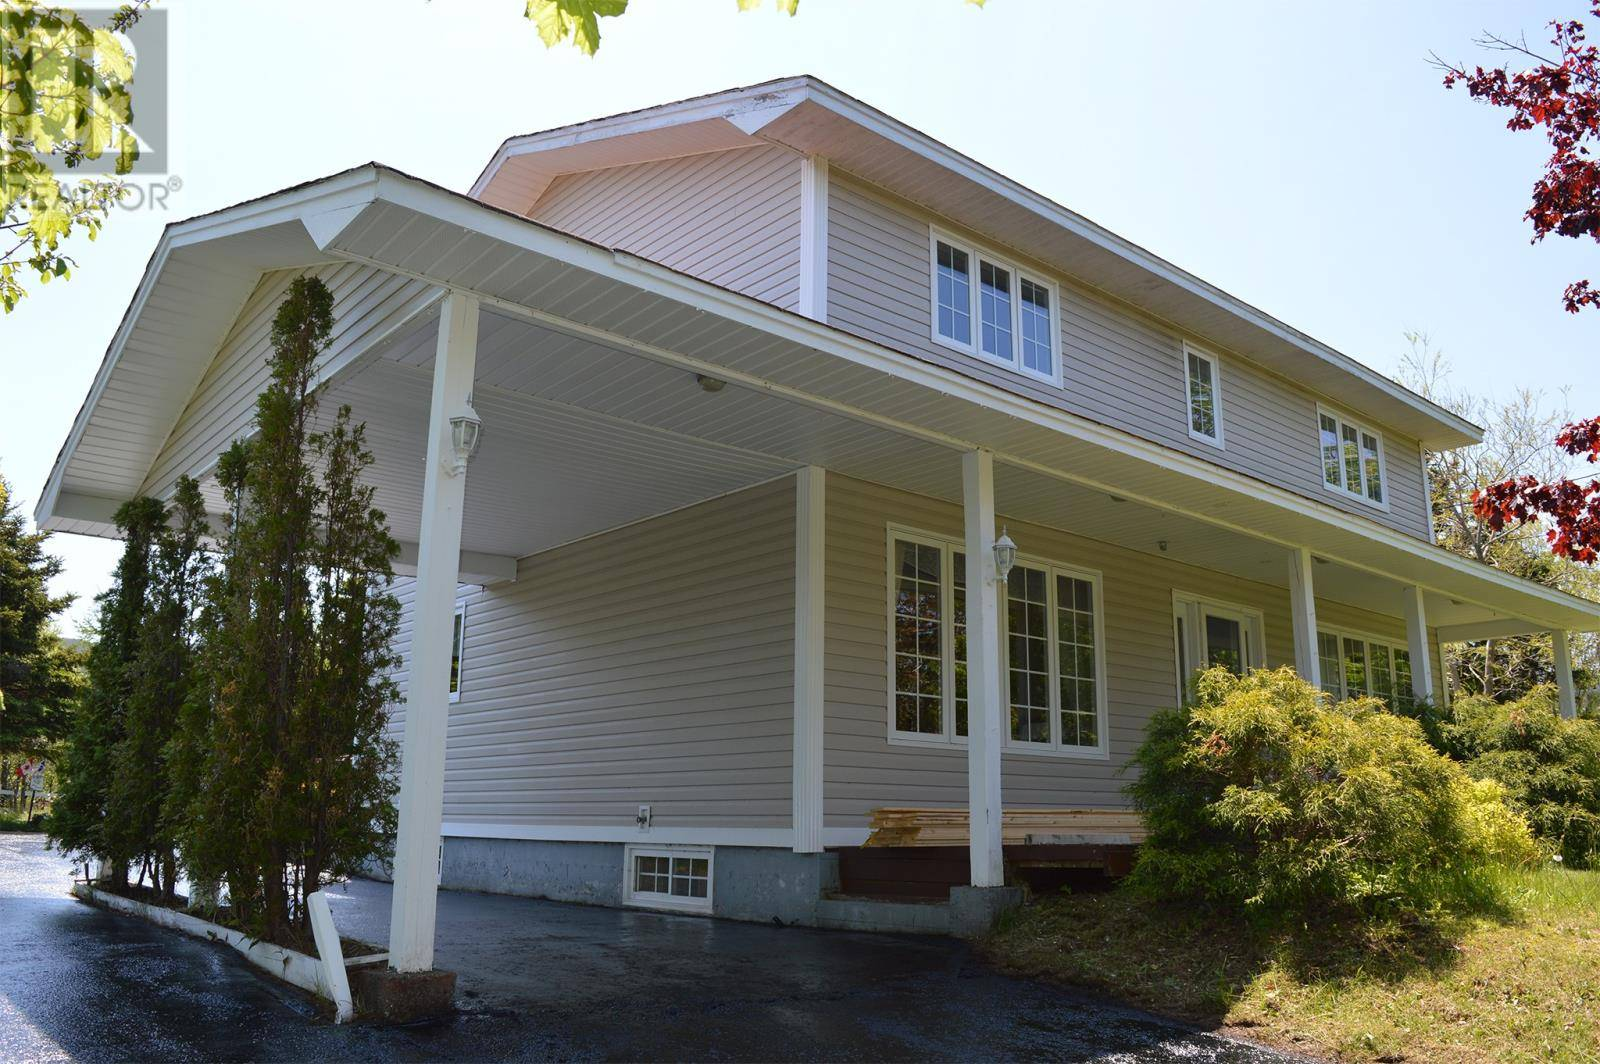 House for sale at 45 North River Rd North River Newfoundland - MLS: 1209471